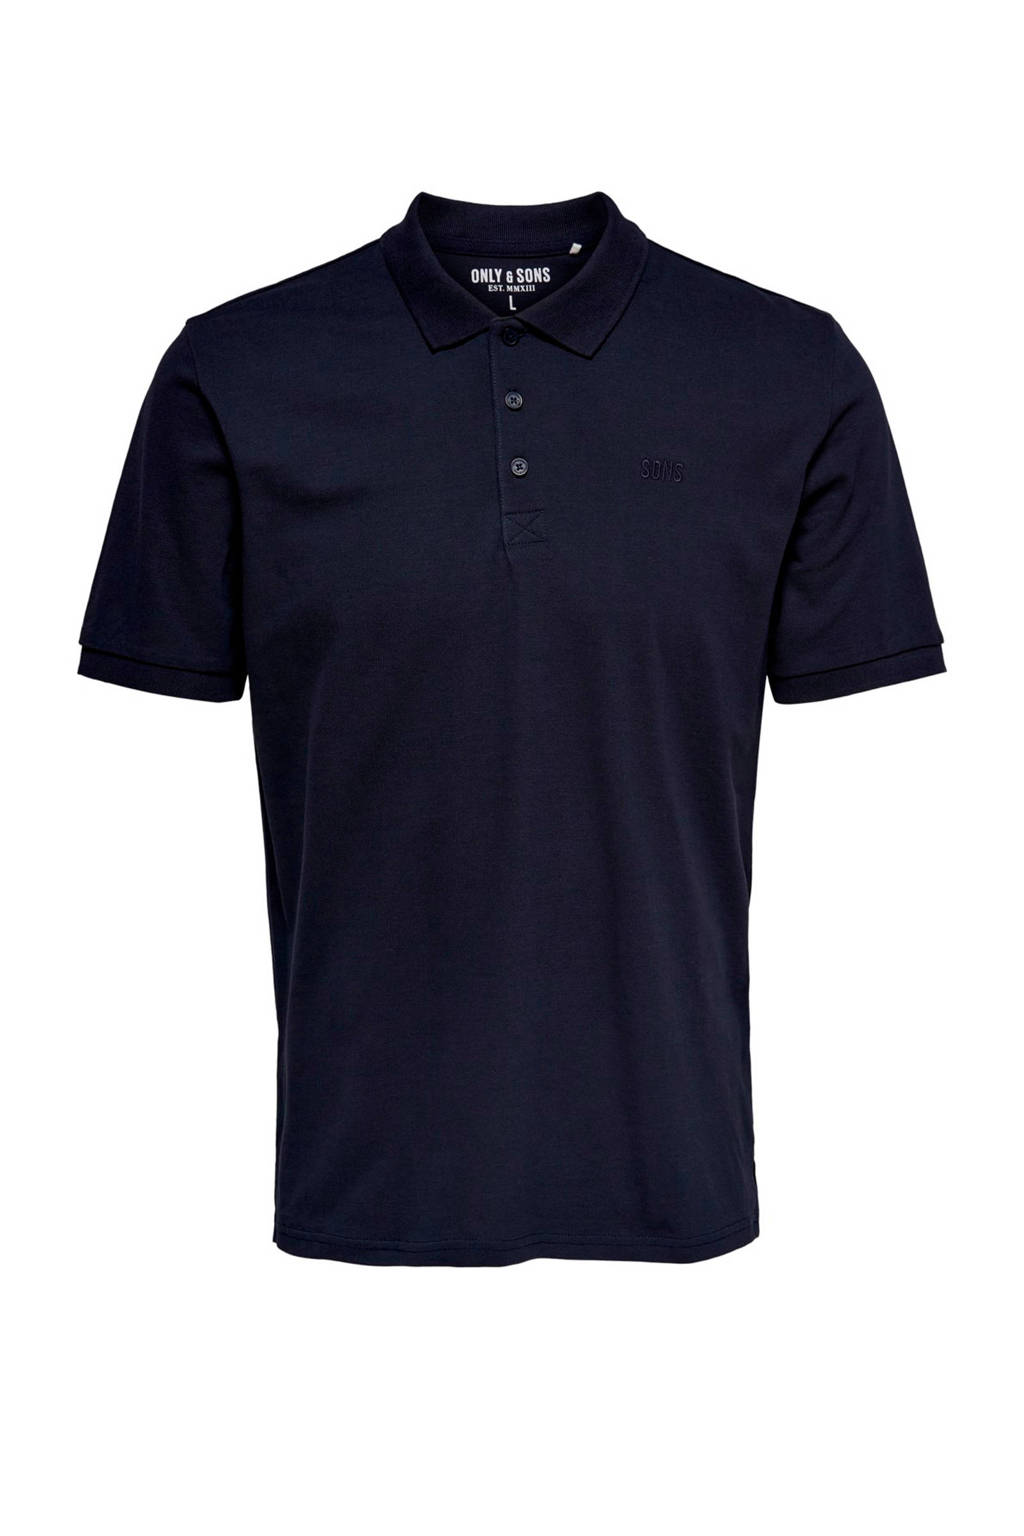 ONLY & SONS regular fit polo donkerblauw, Donkerblauw